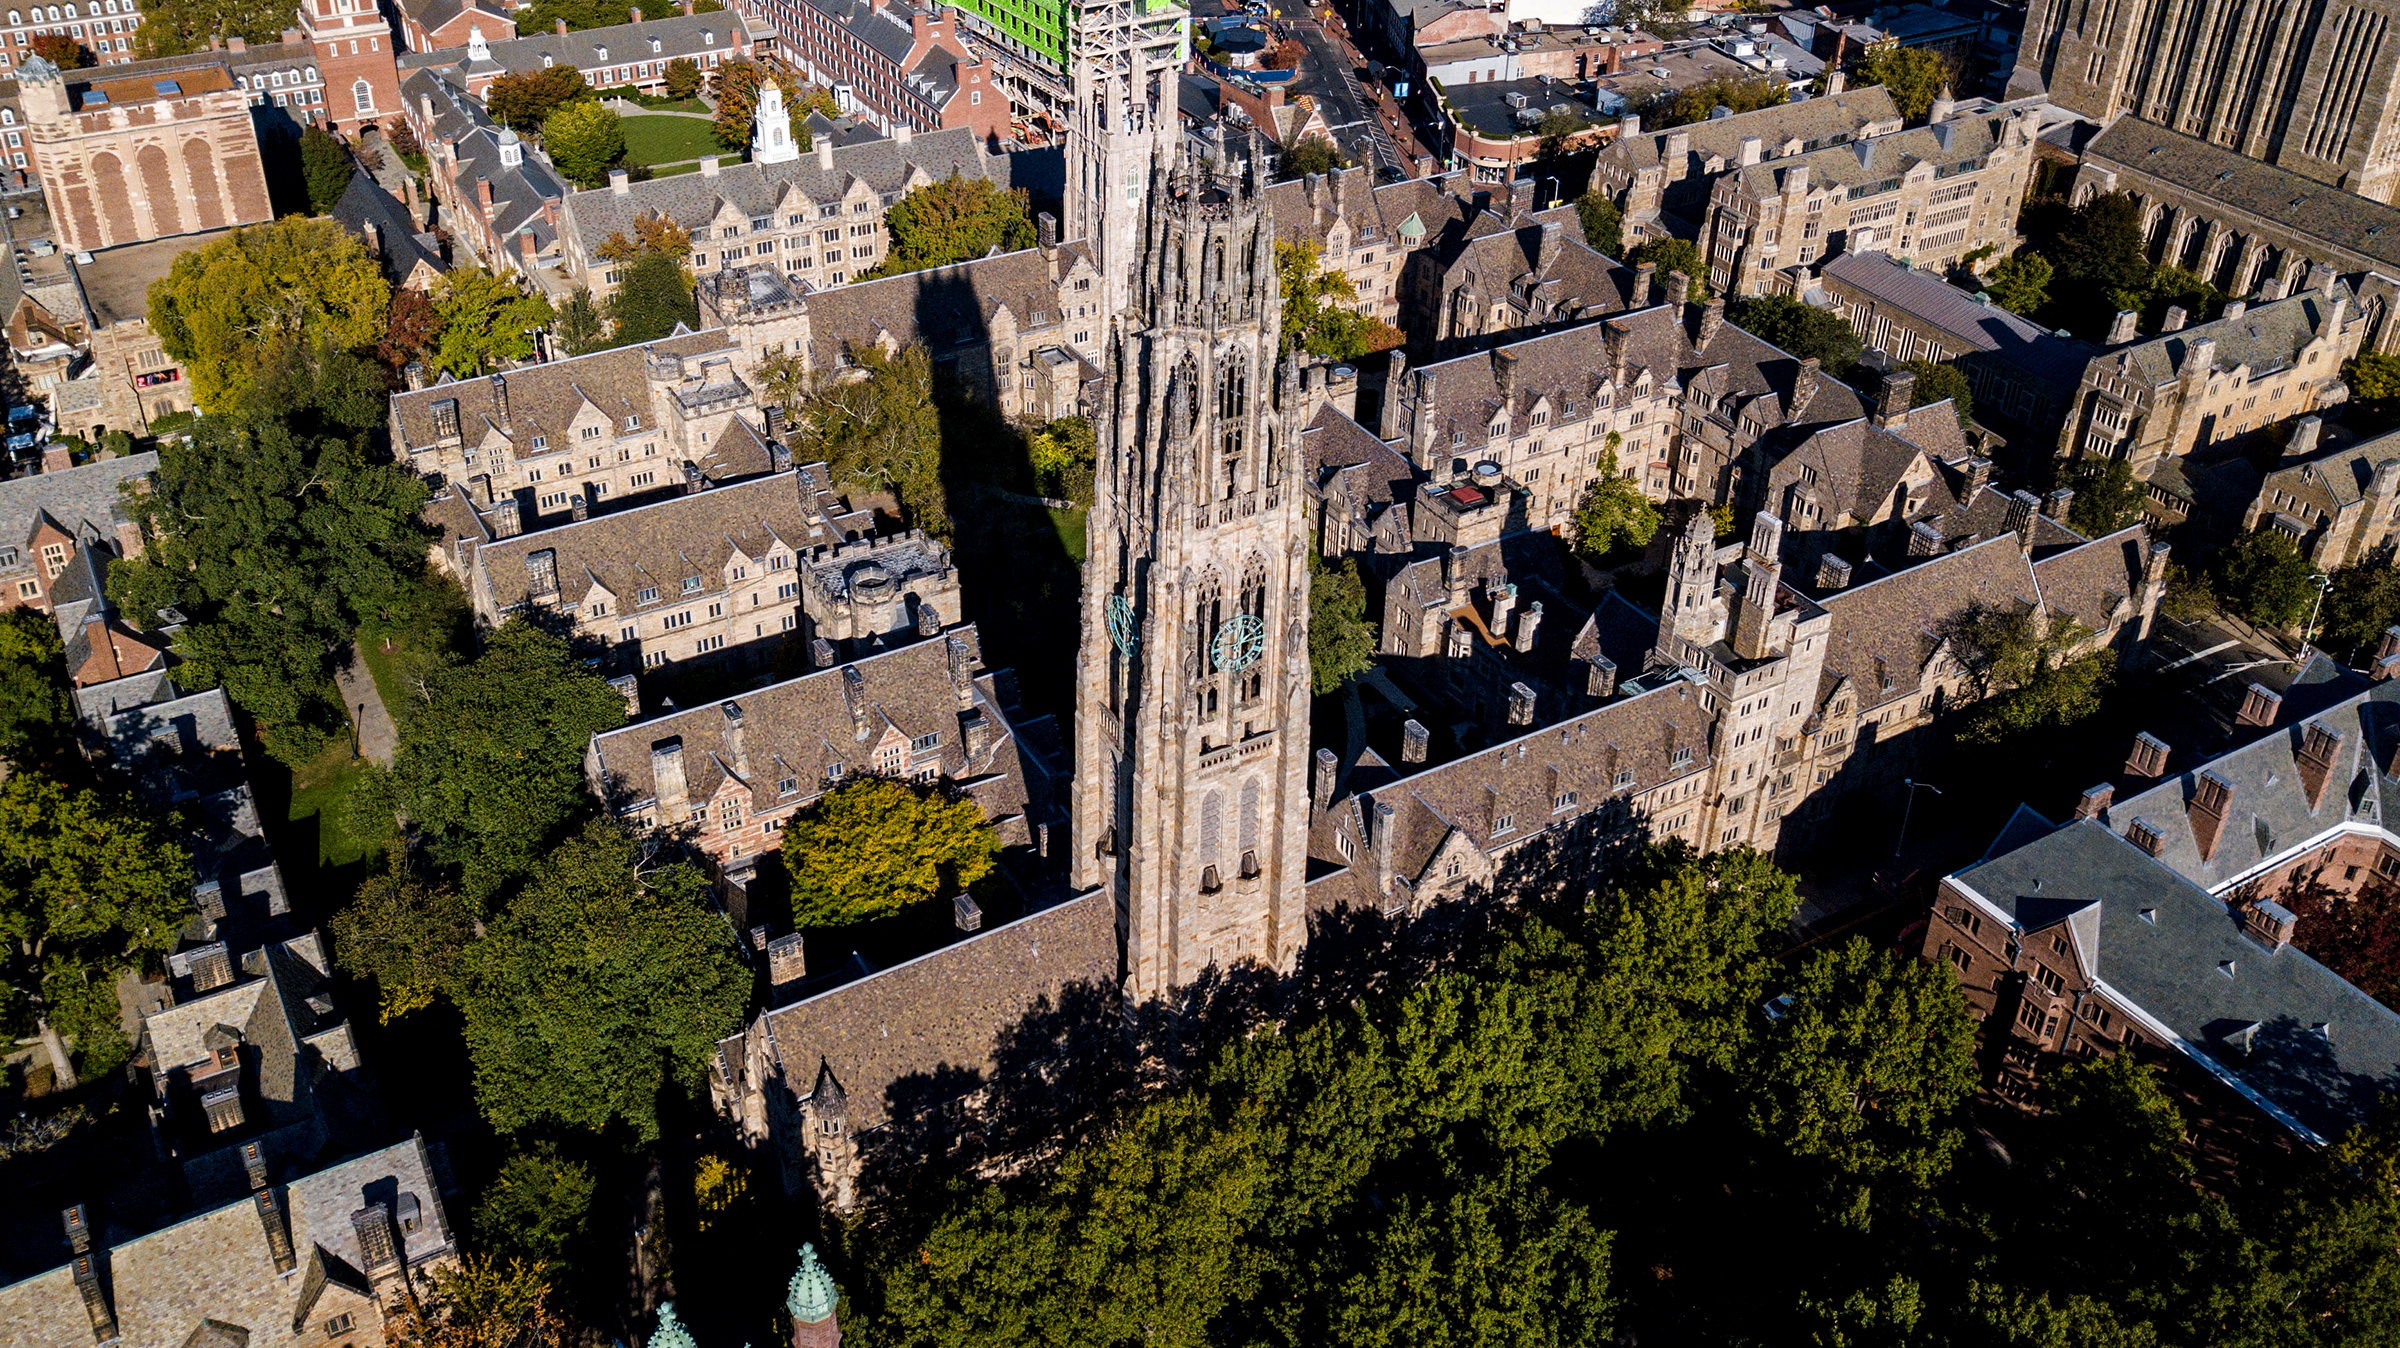 An aerial view of the Yale University Campus in New Haven, Connecticut.